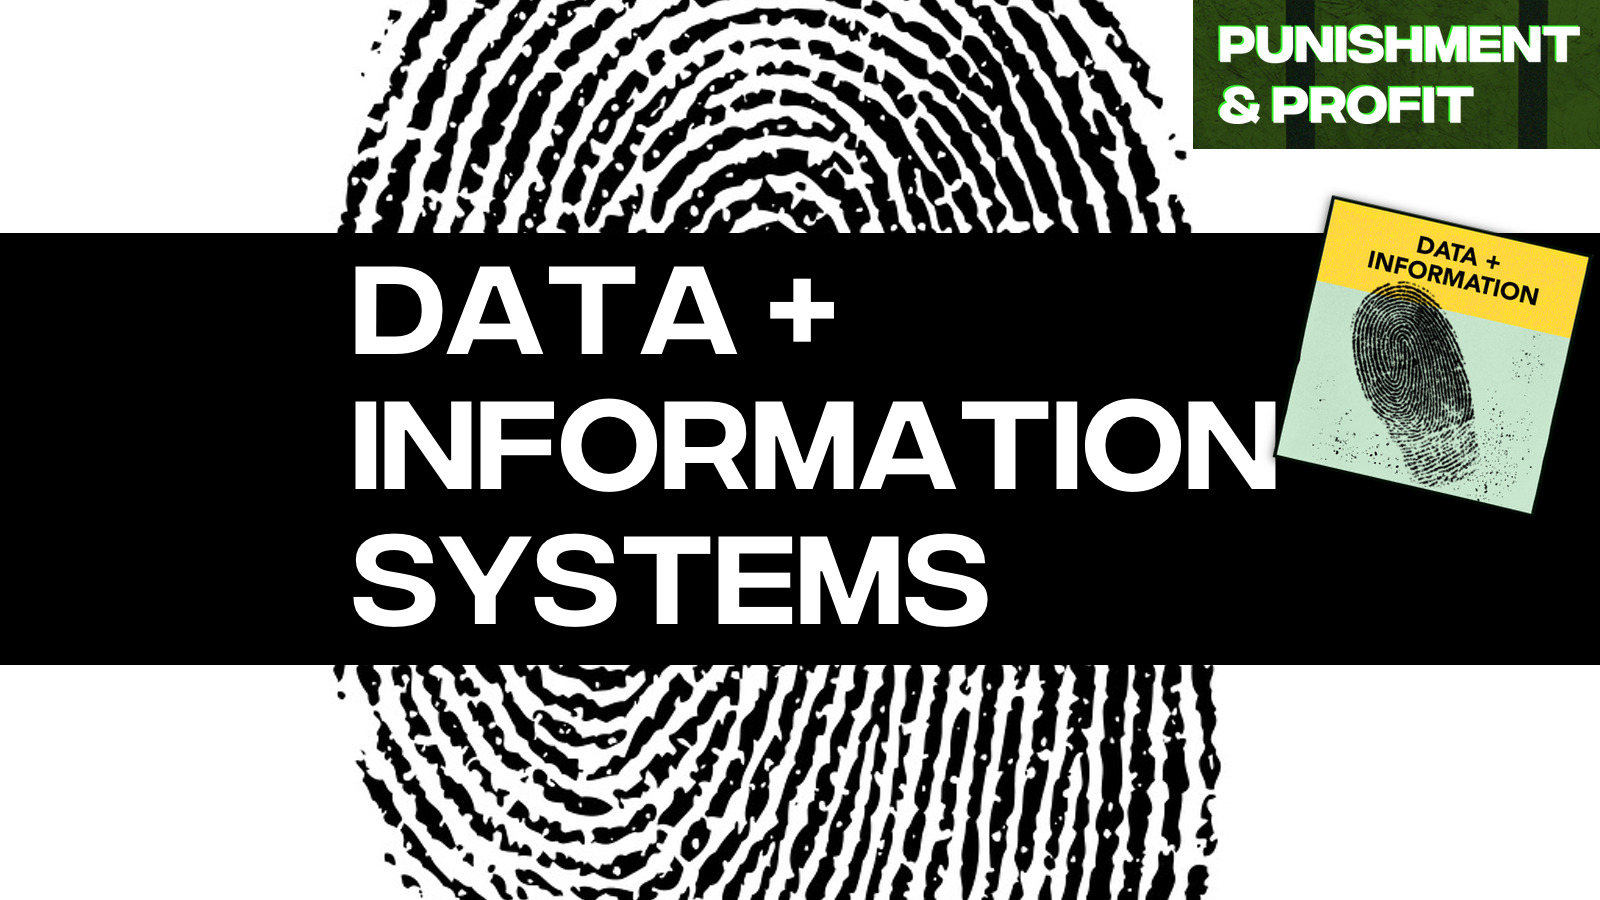 Punishment & Profit: Data and Information Systems